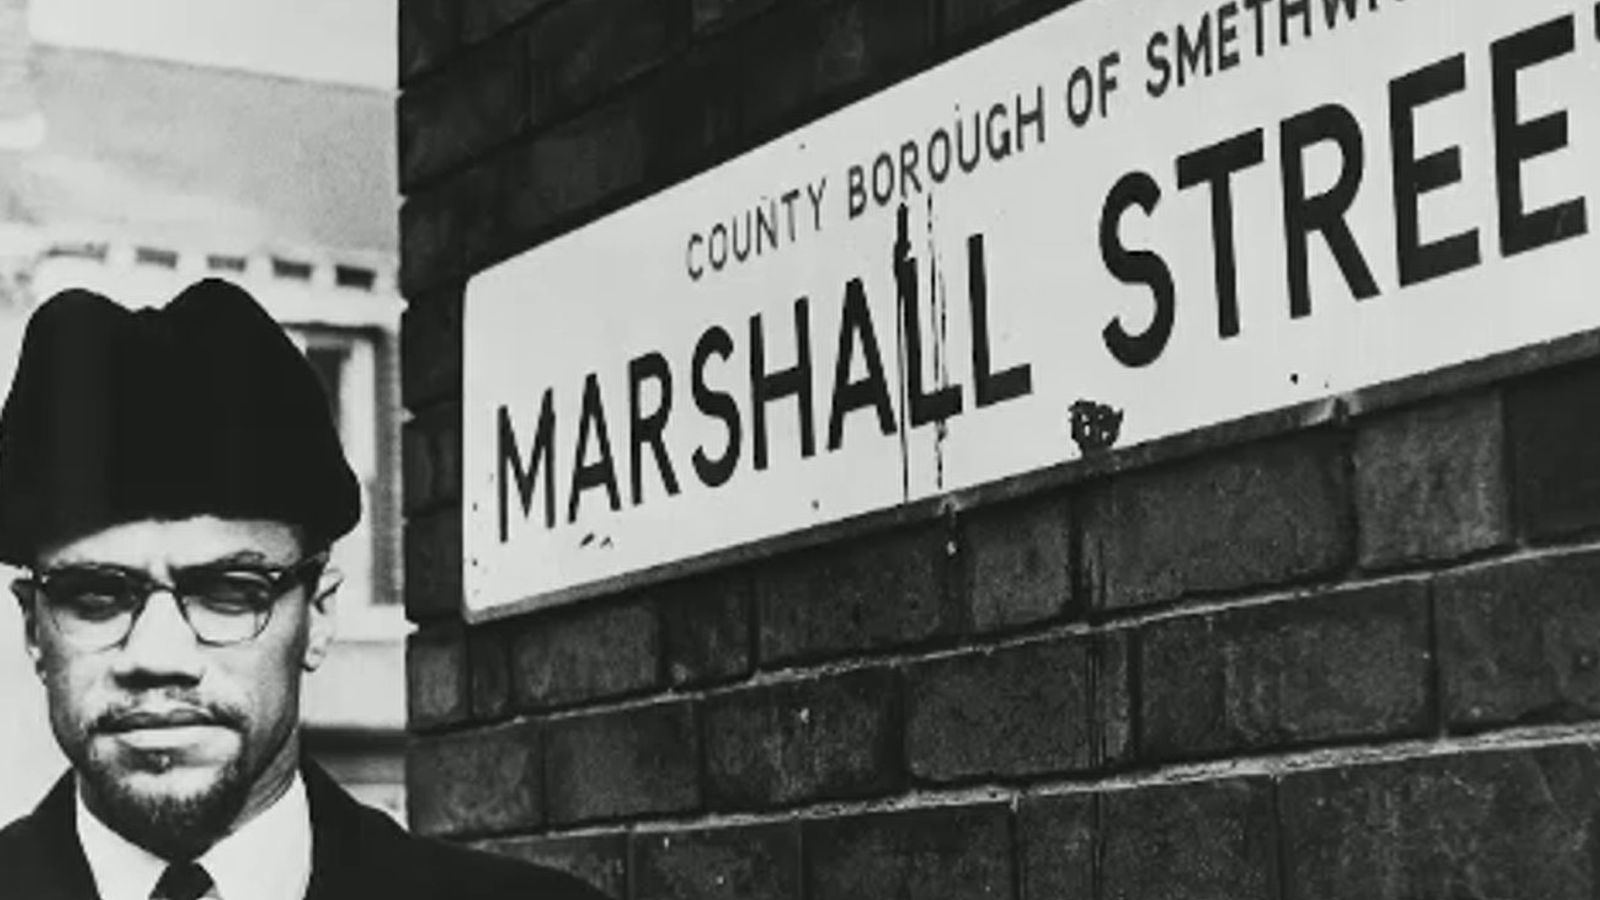 Black History Month: 55 years ago, this was Britain's 'most racist' street. What's it like now in 2020?